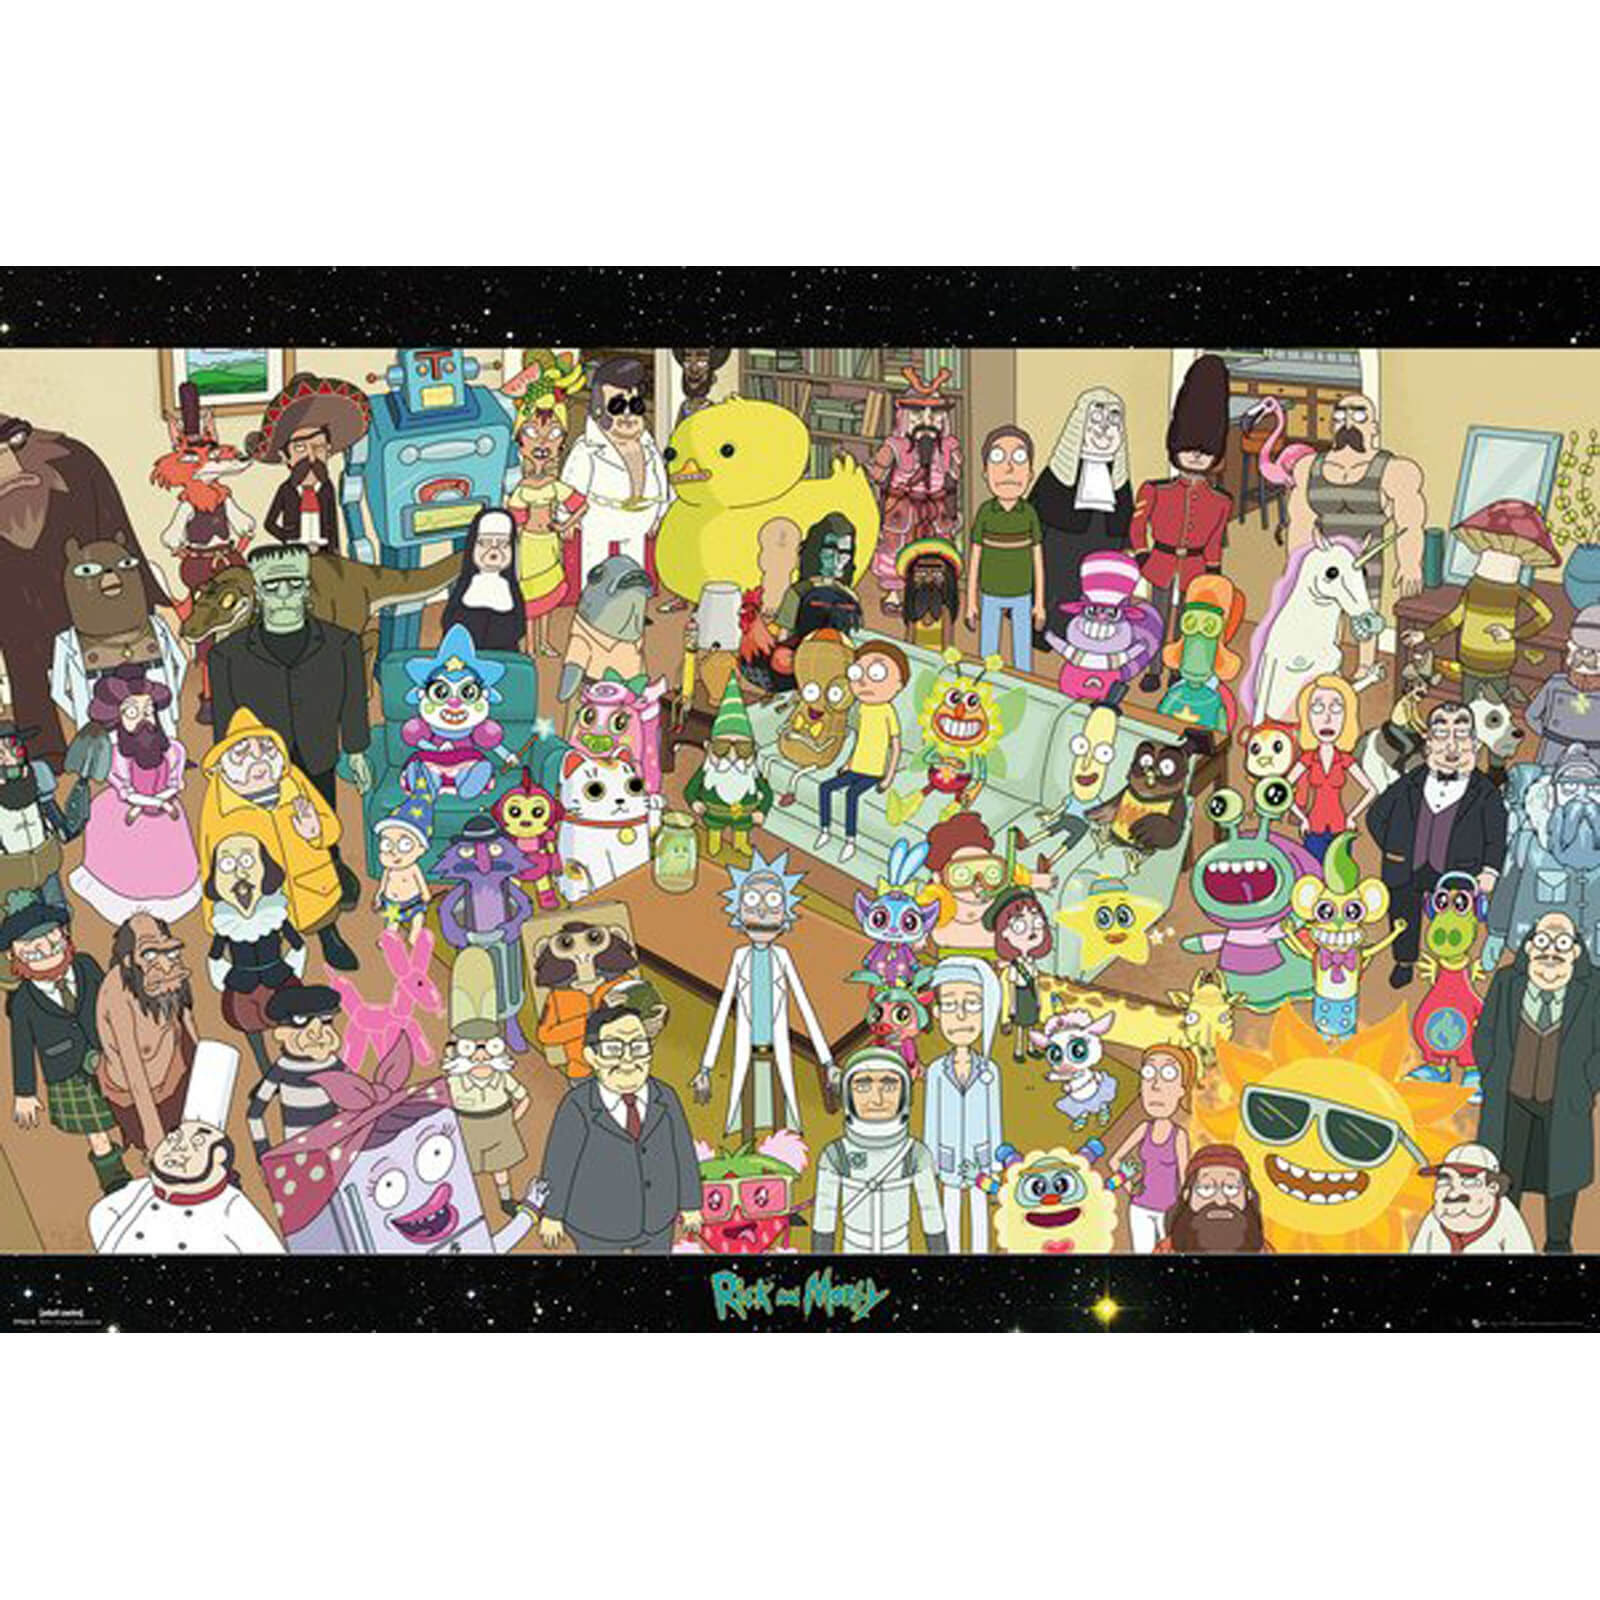 Rick and Morty Cast Maxi Poster 61 x 91.5cm